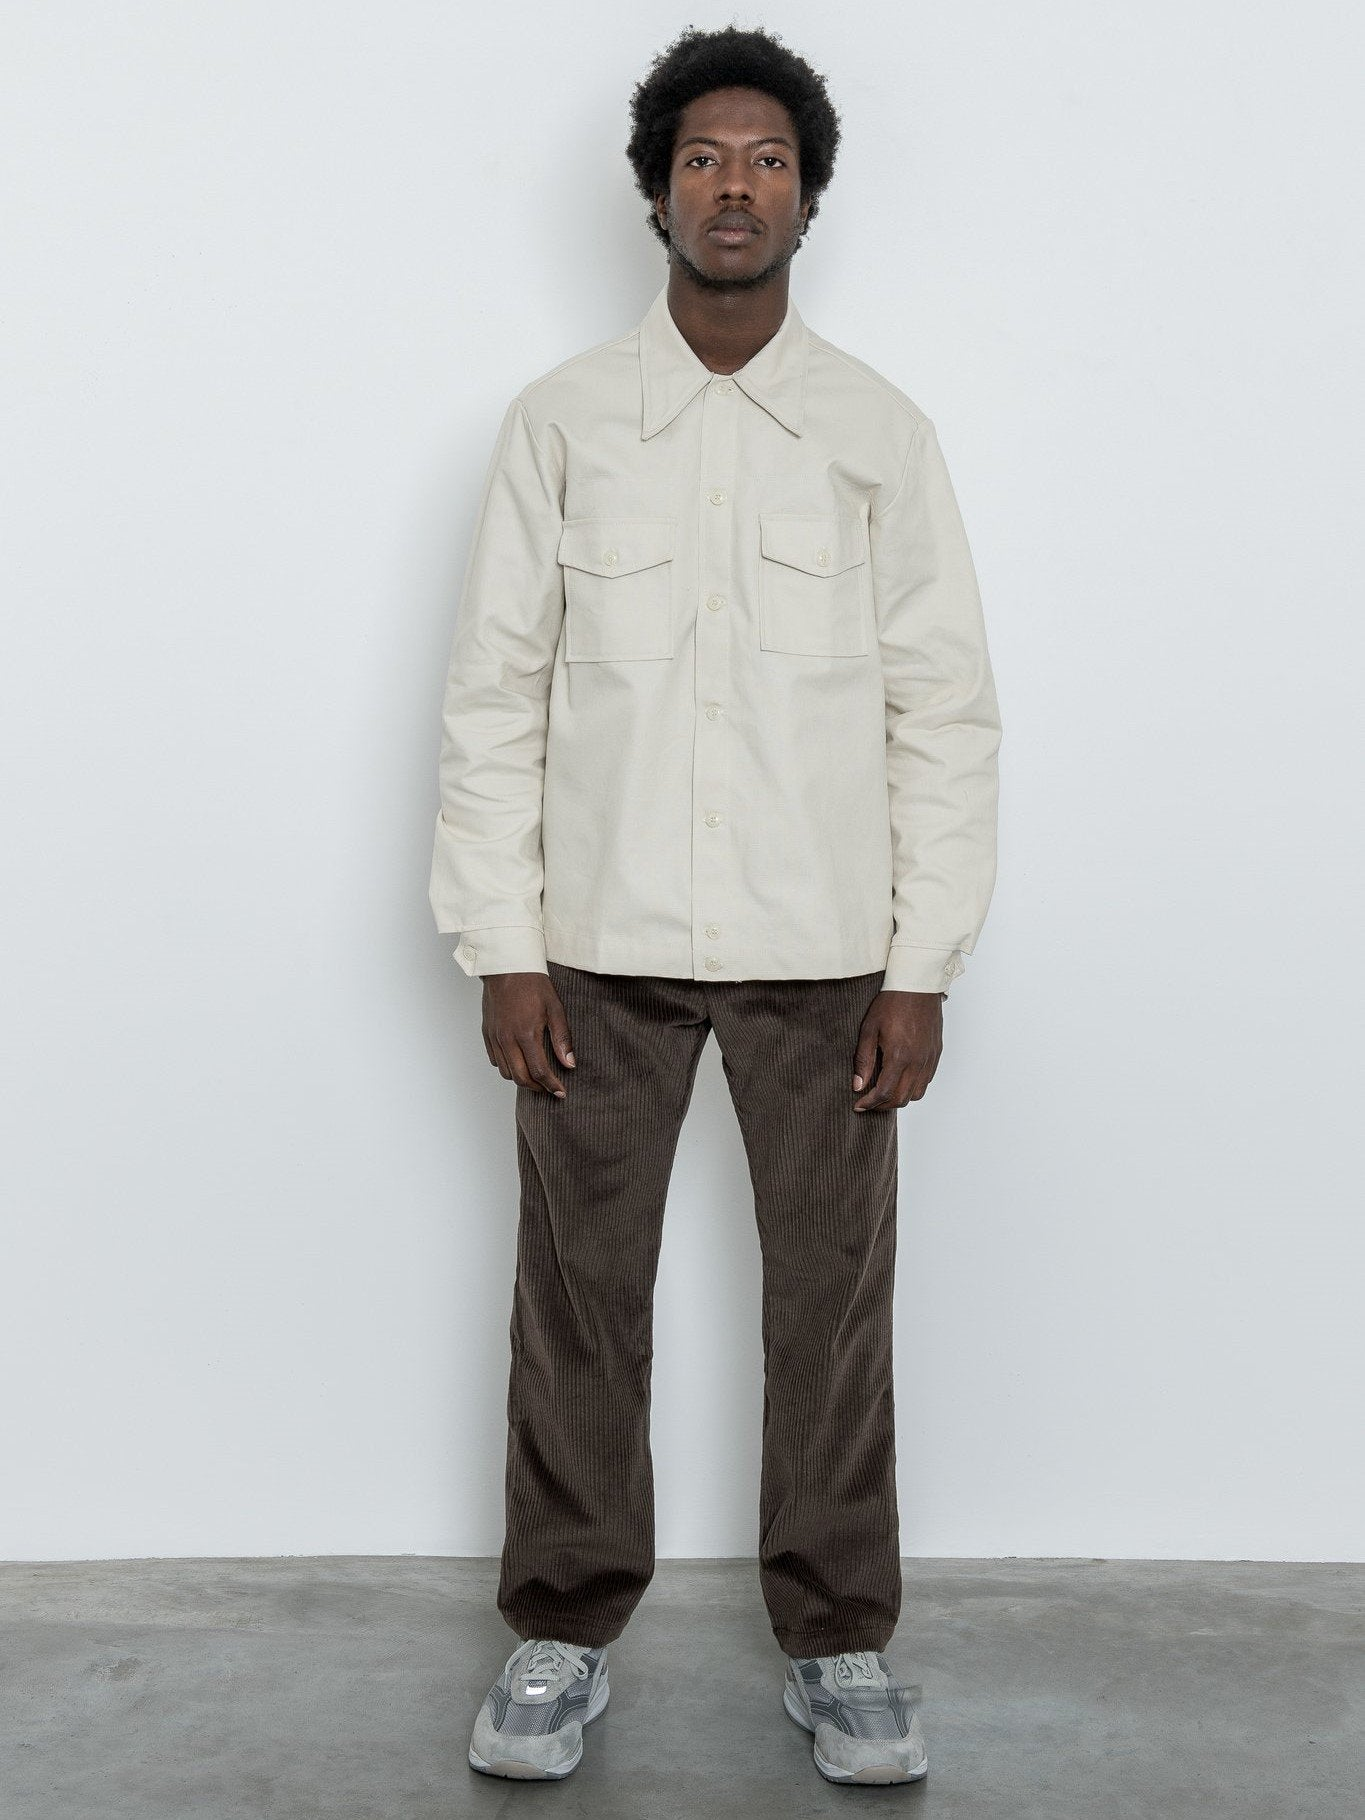 Namu Shop - paa Rodeo Shirt - Natural